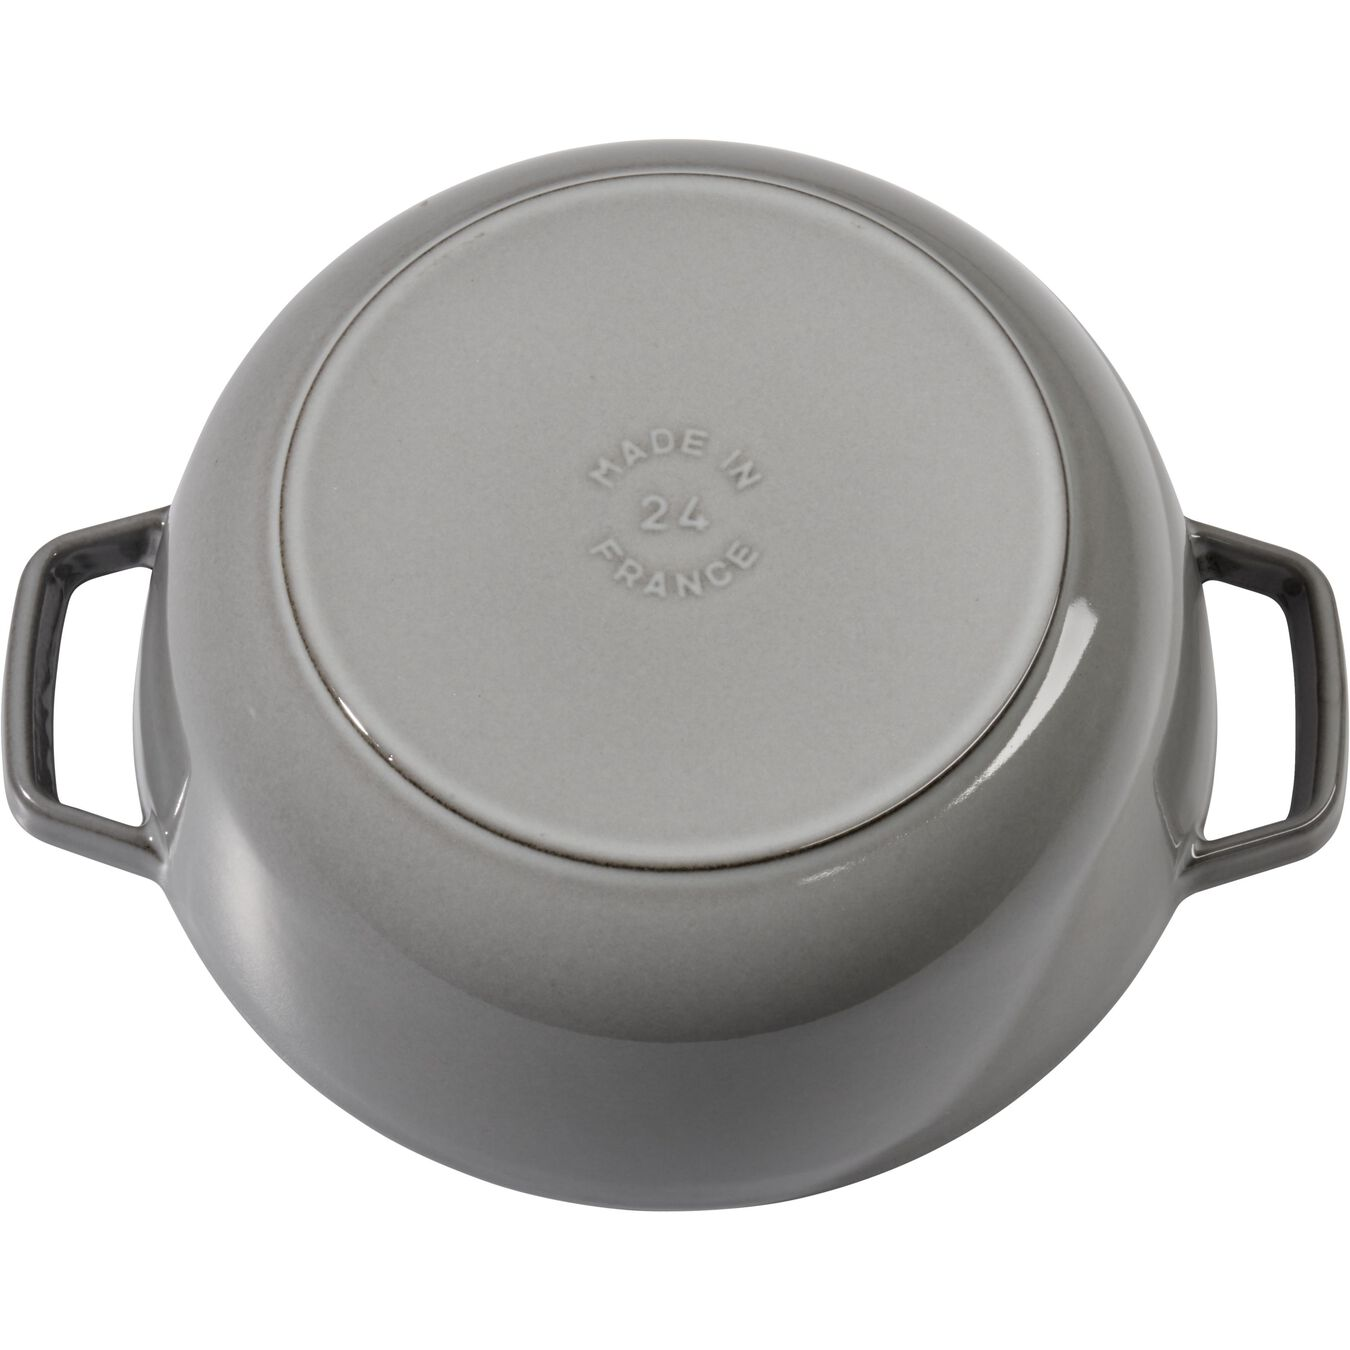 3.75-qt Essential French Oven - Graphite Grey,,large 2